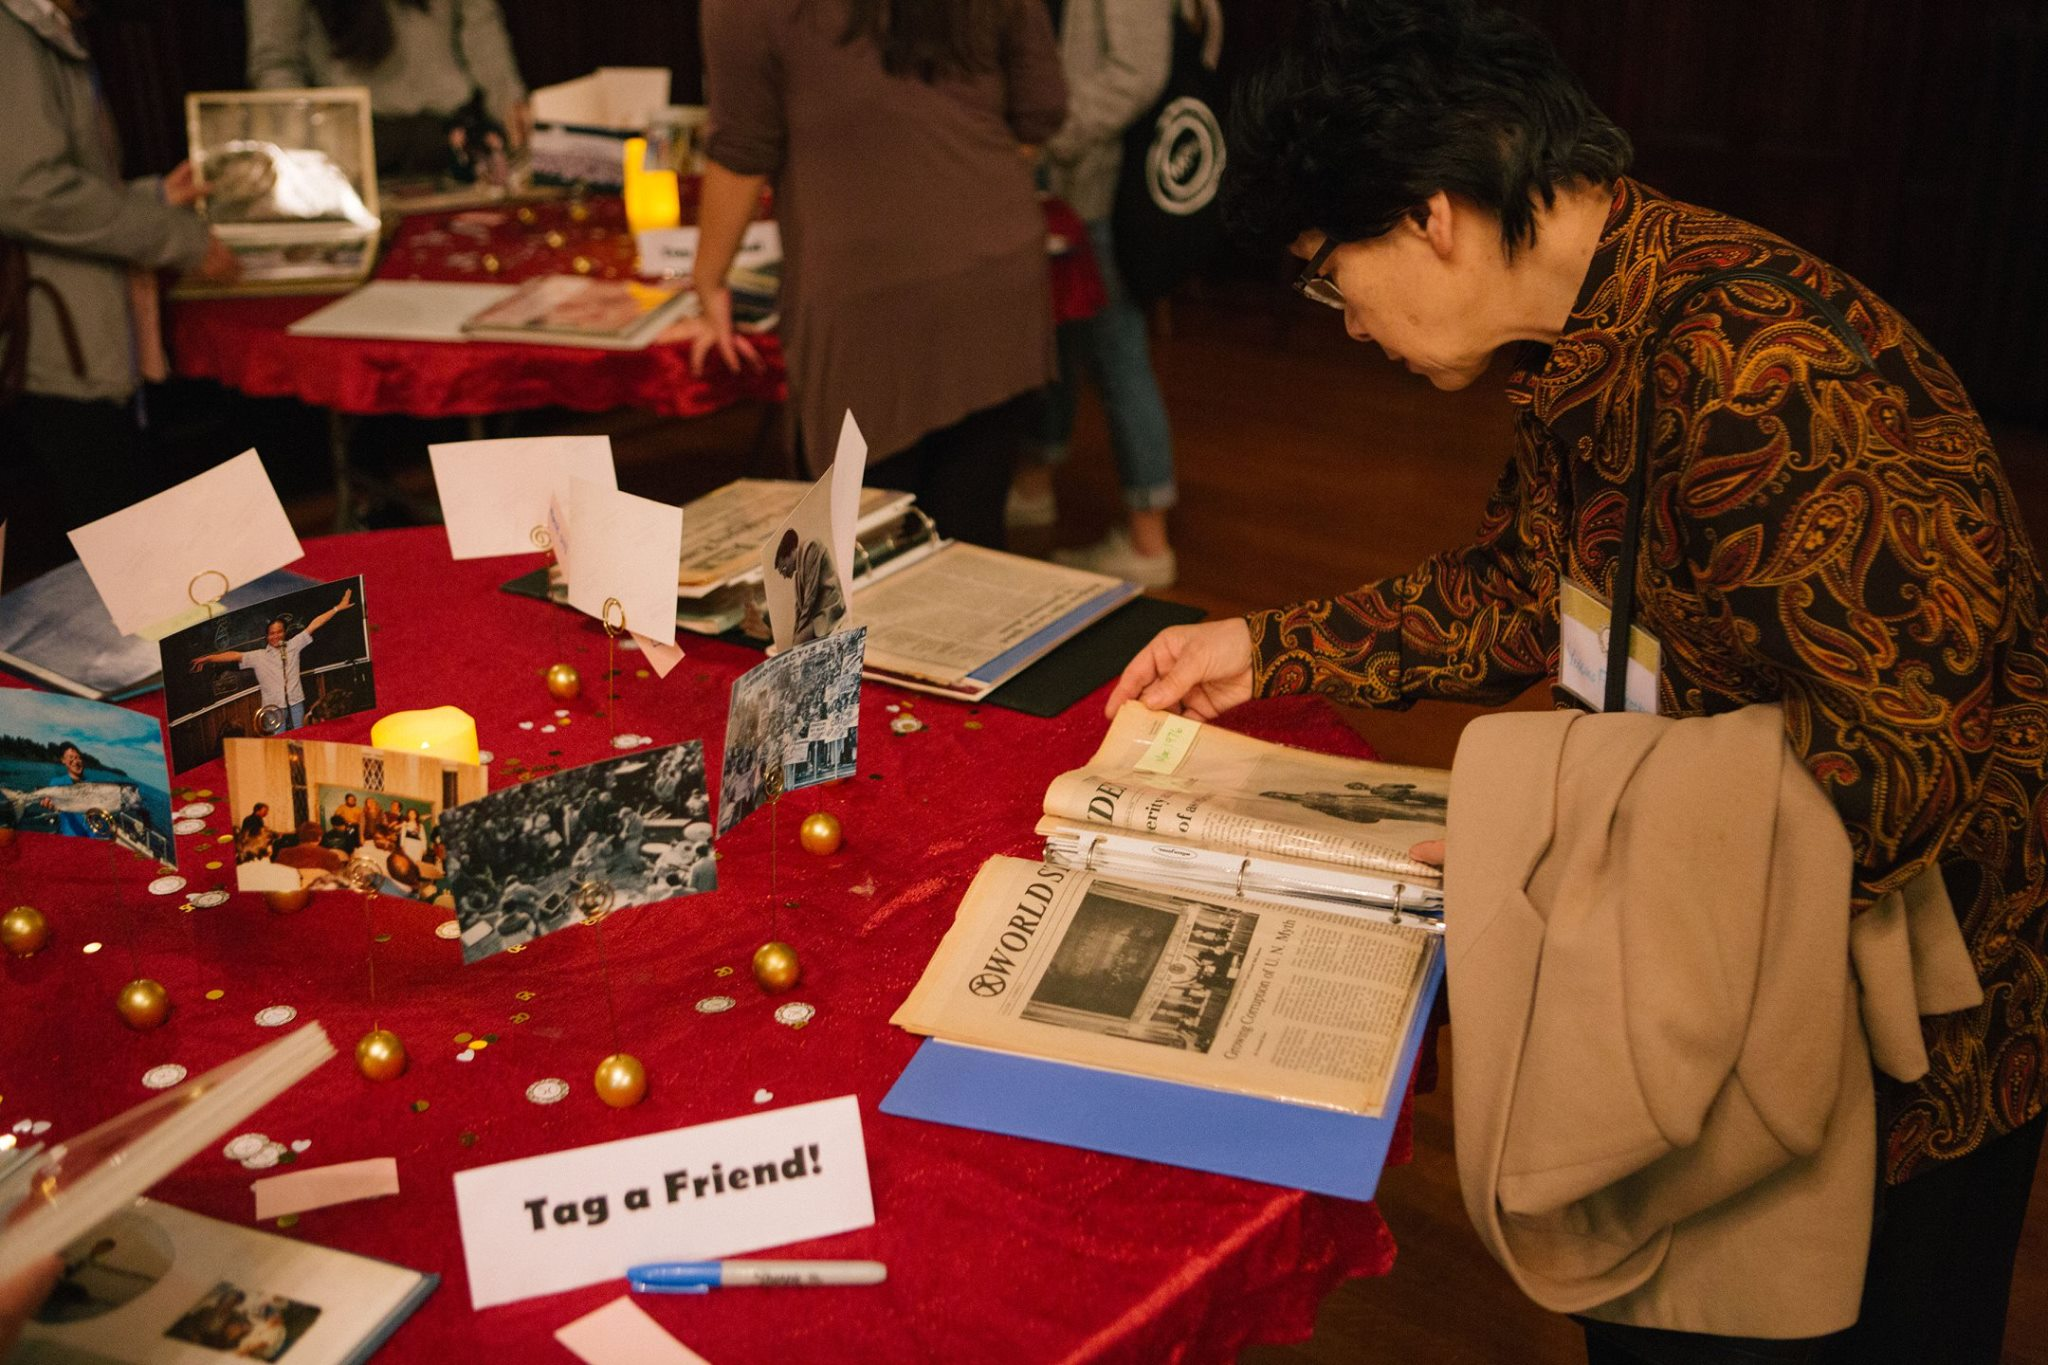 Reception of photos and literature celebrating CARP's rich 50 years.